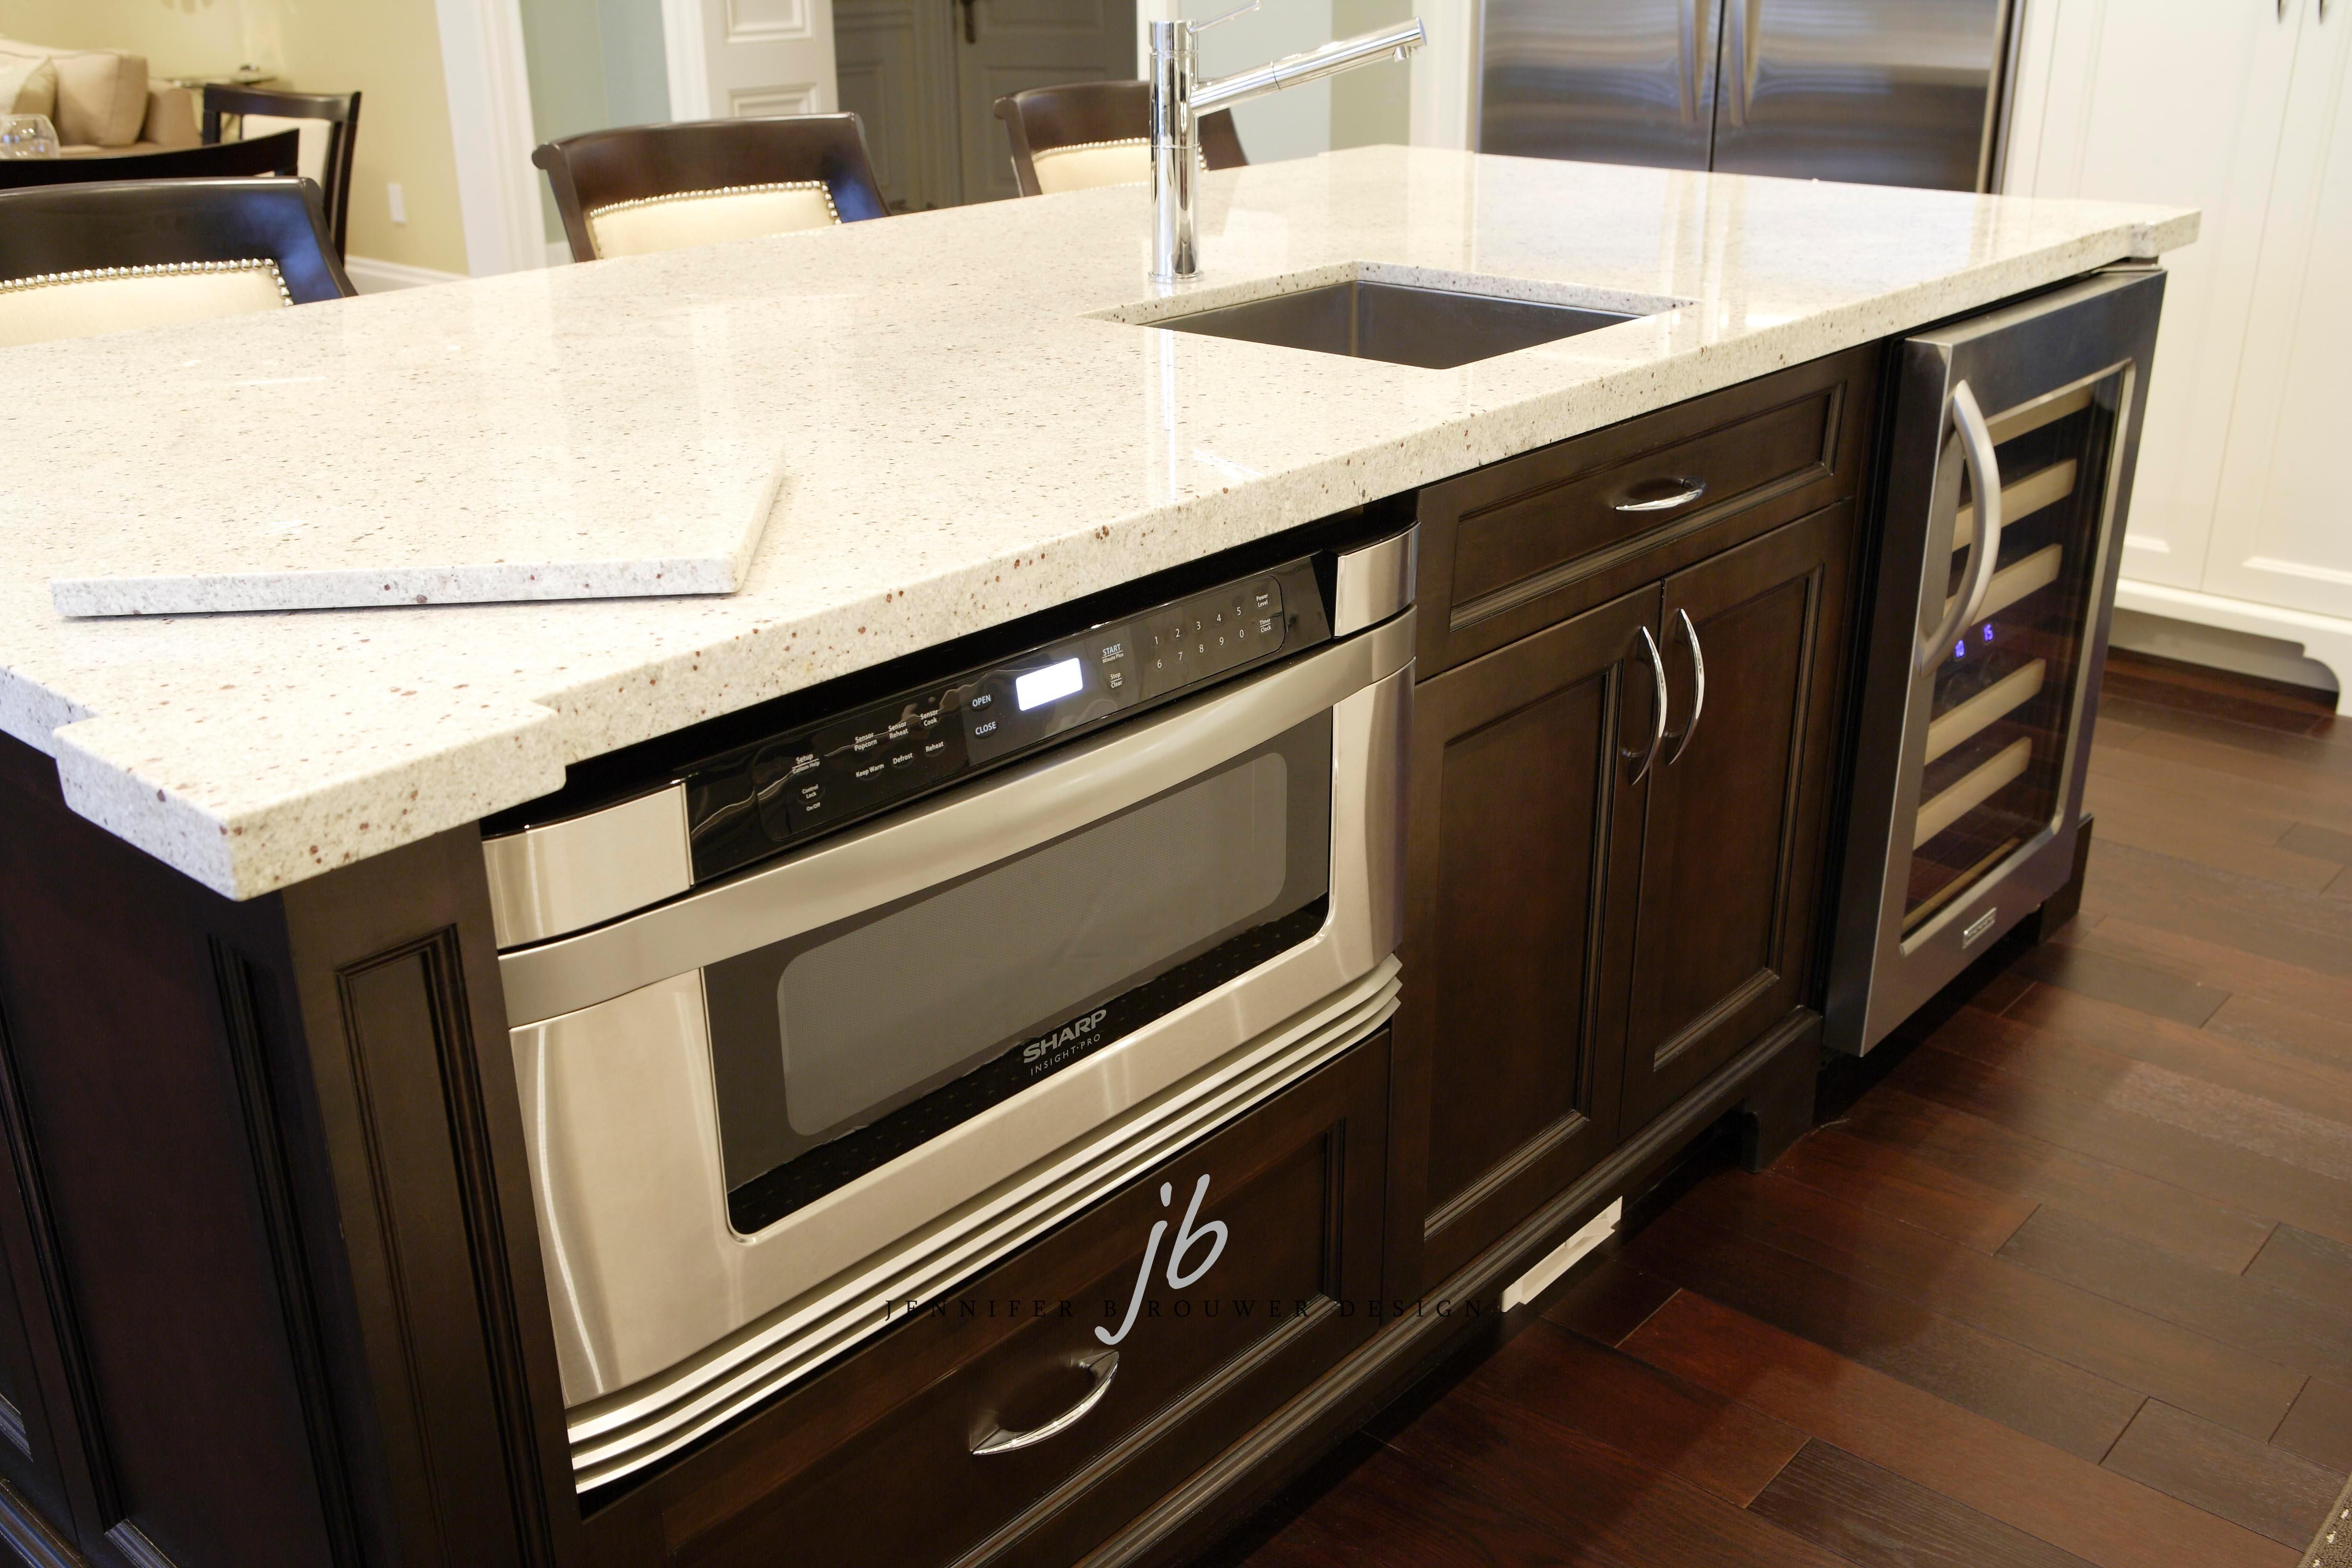 jbd kitchen island design incorporating a microwave convection oven belowcounter microwave oven spacesaving kitchen design clever kitchen ideas kitchen